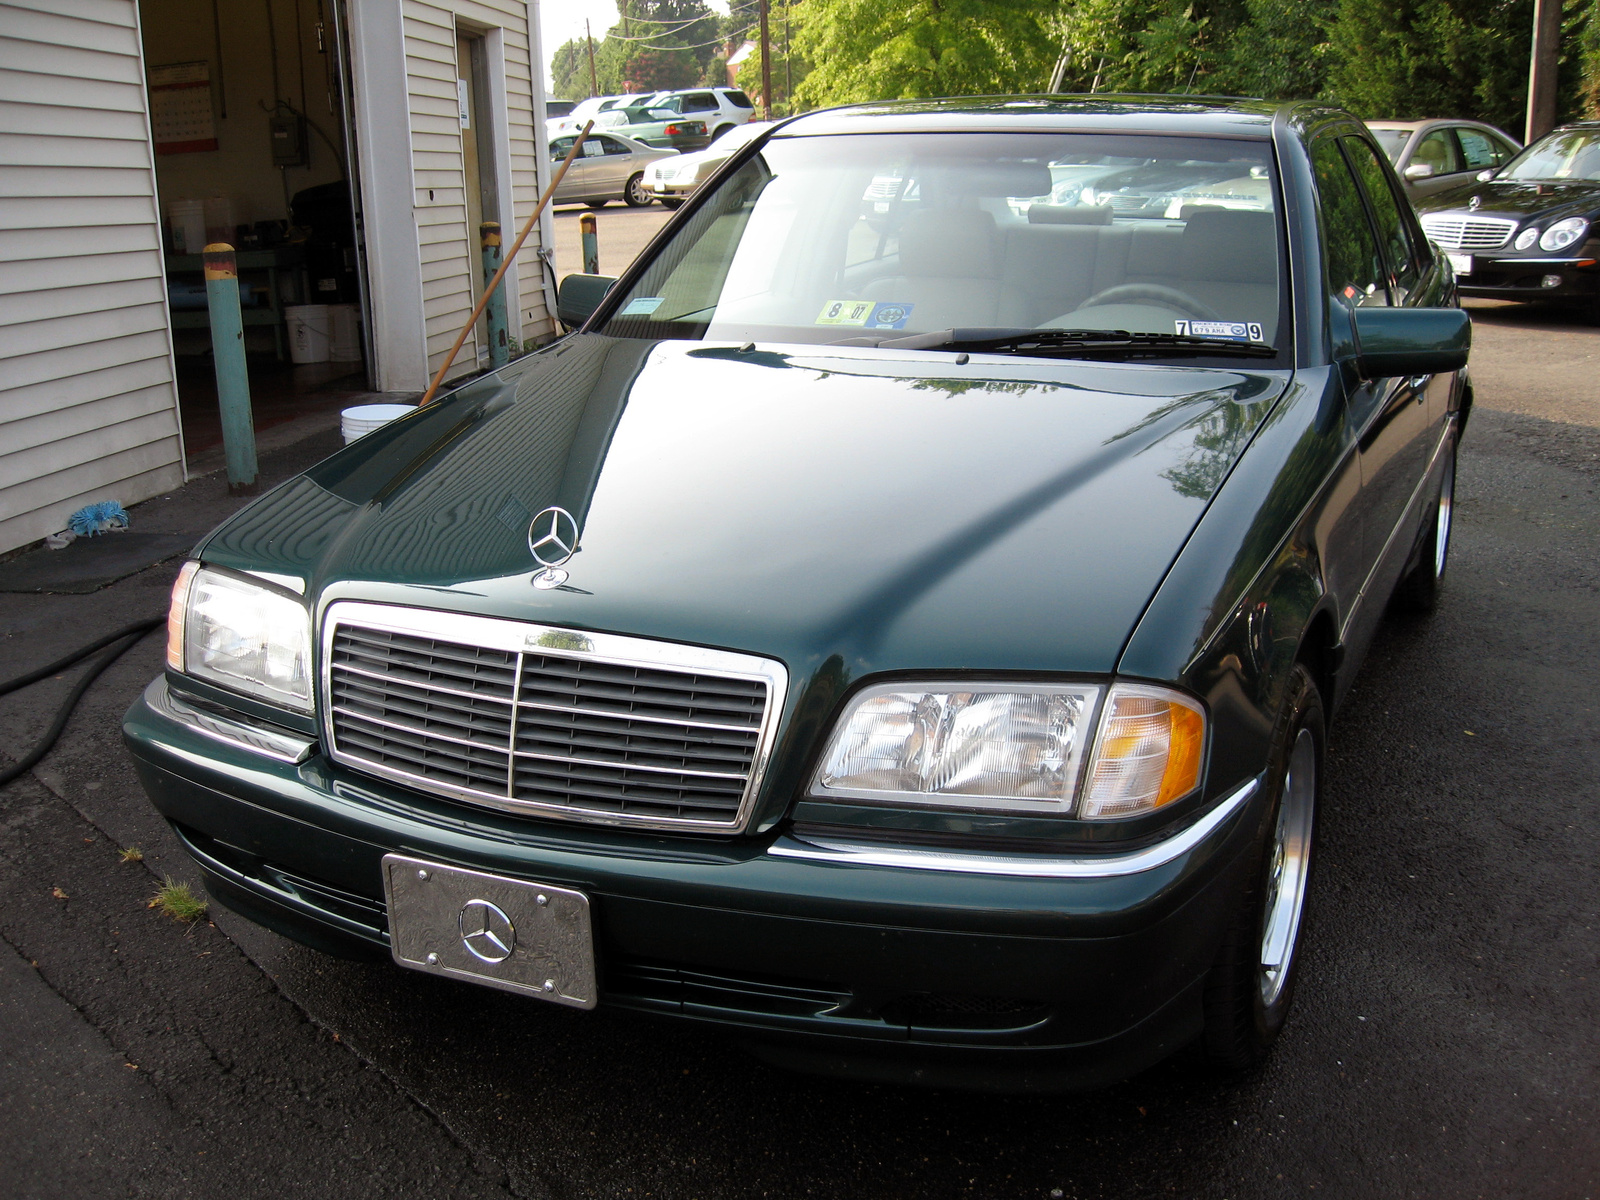 Mercedes Benz C Class Owners manual 2000